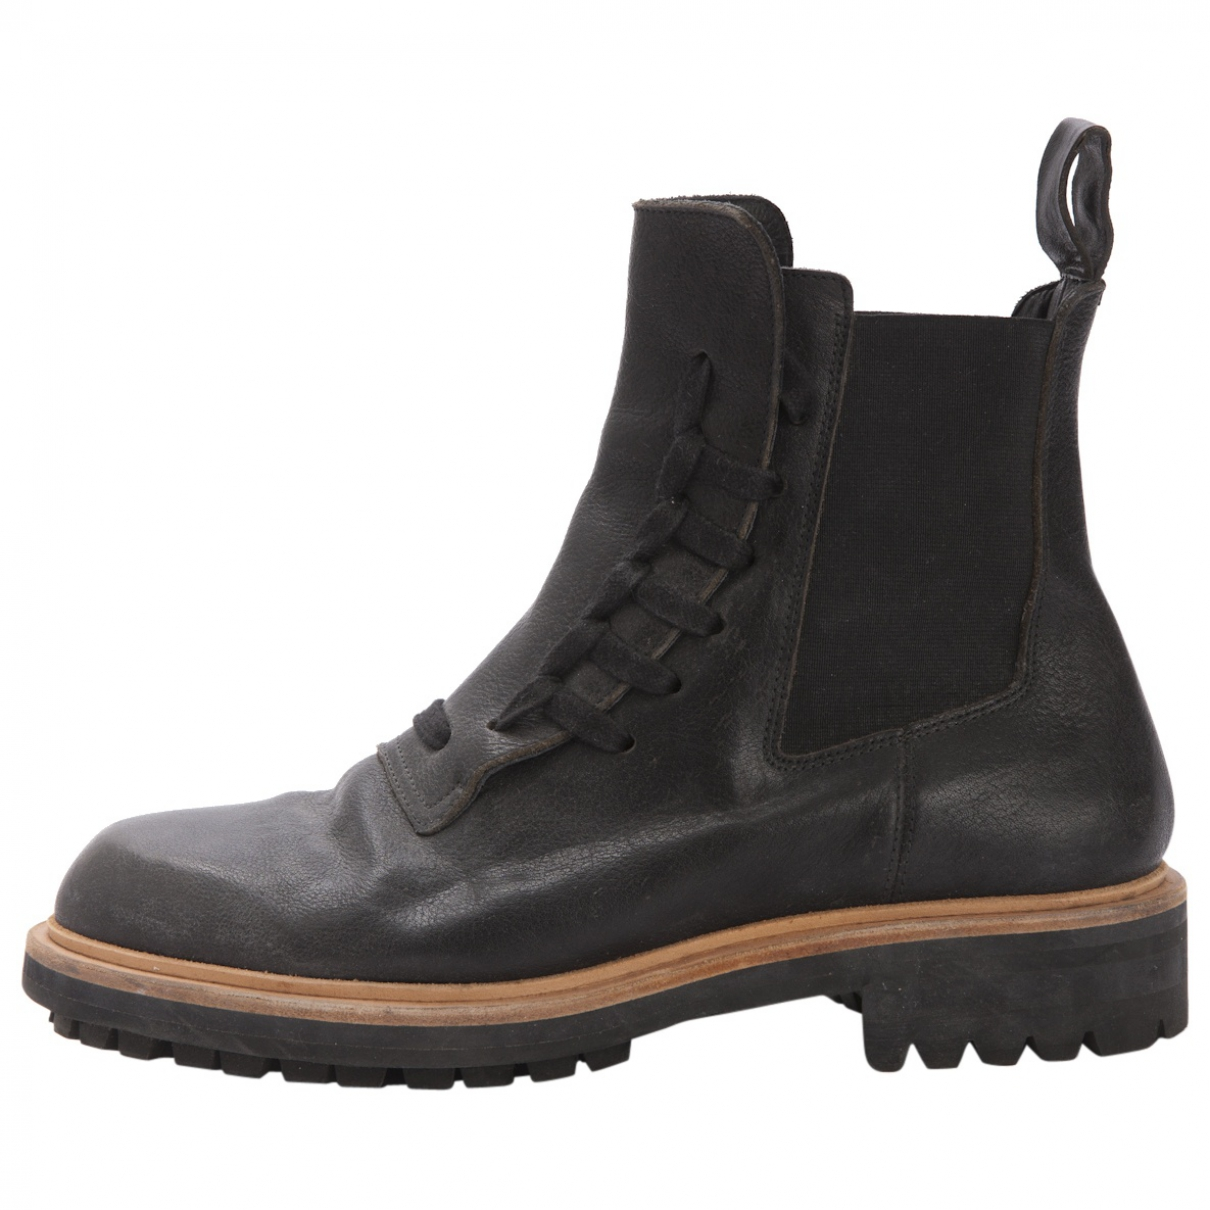 Anthracite Leather Boots by Kris Van Assche